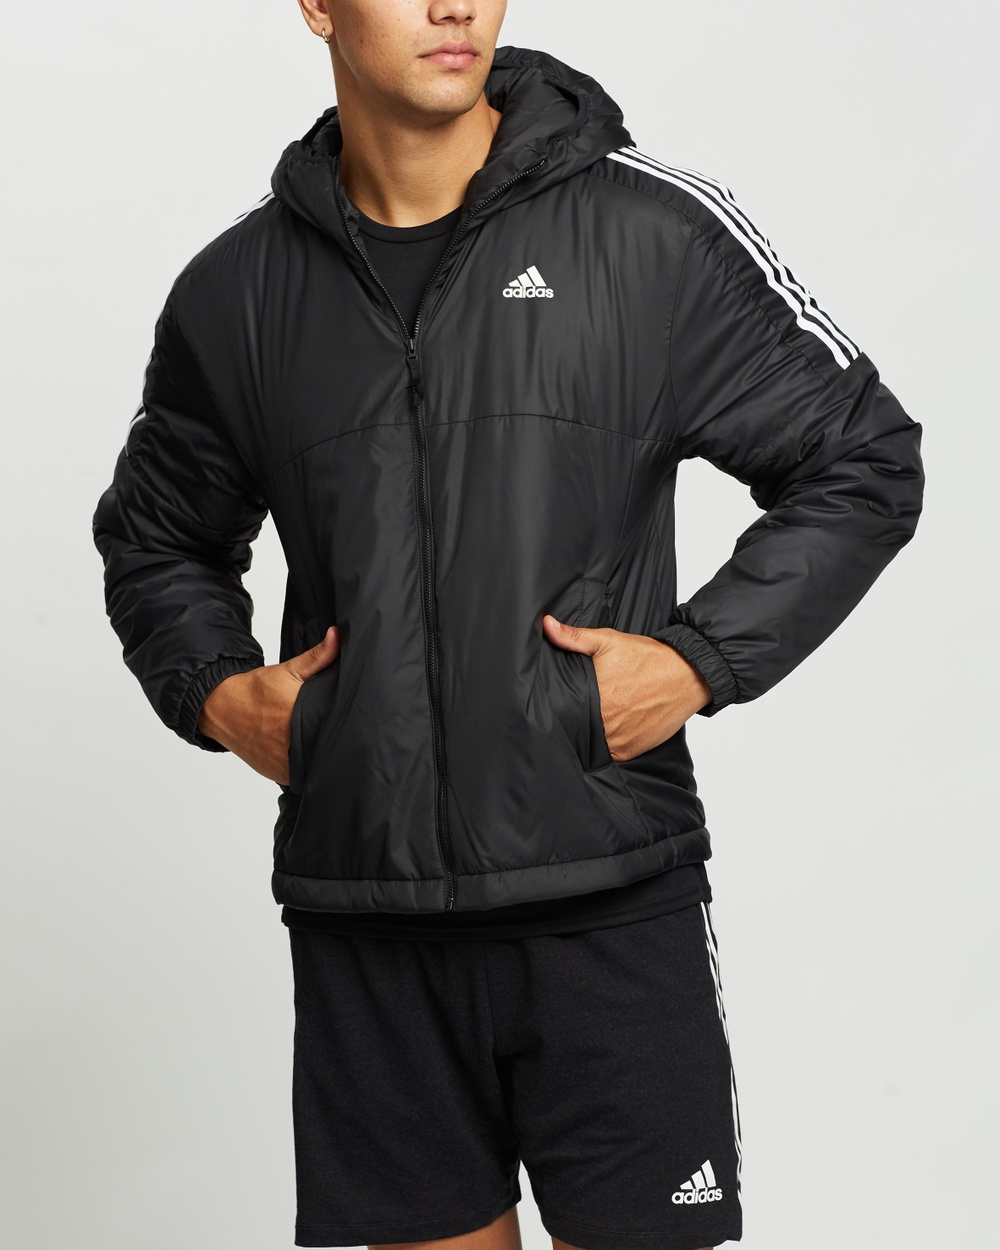 adidas Performance Essentials Insulated Hooded Jacket and Coats Black